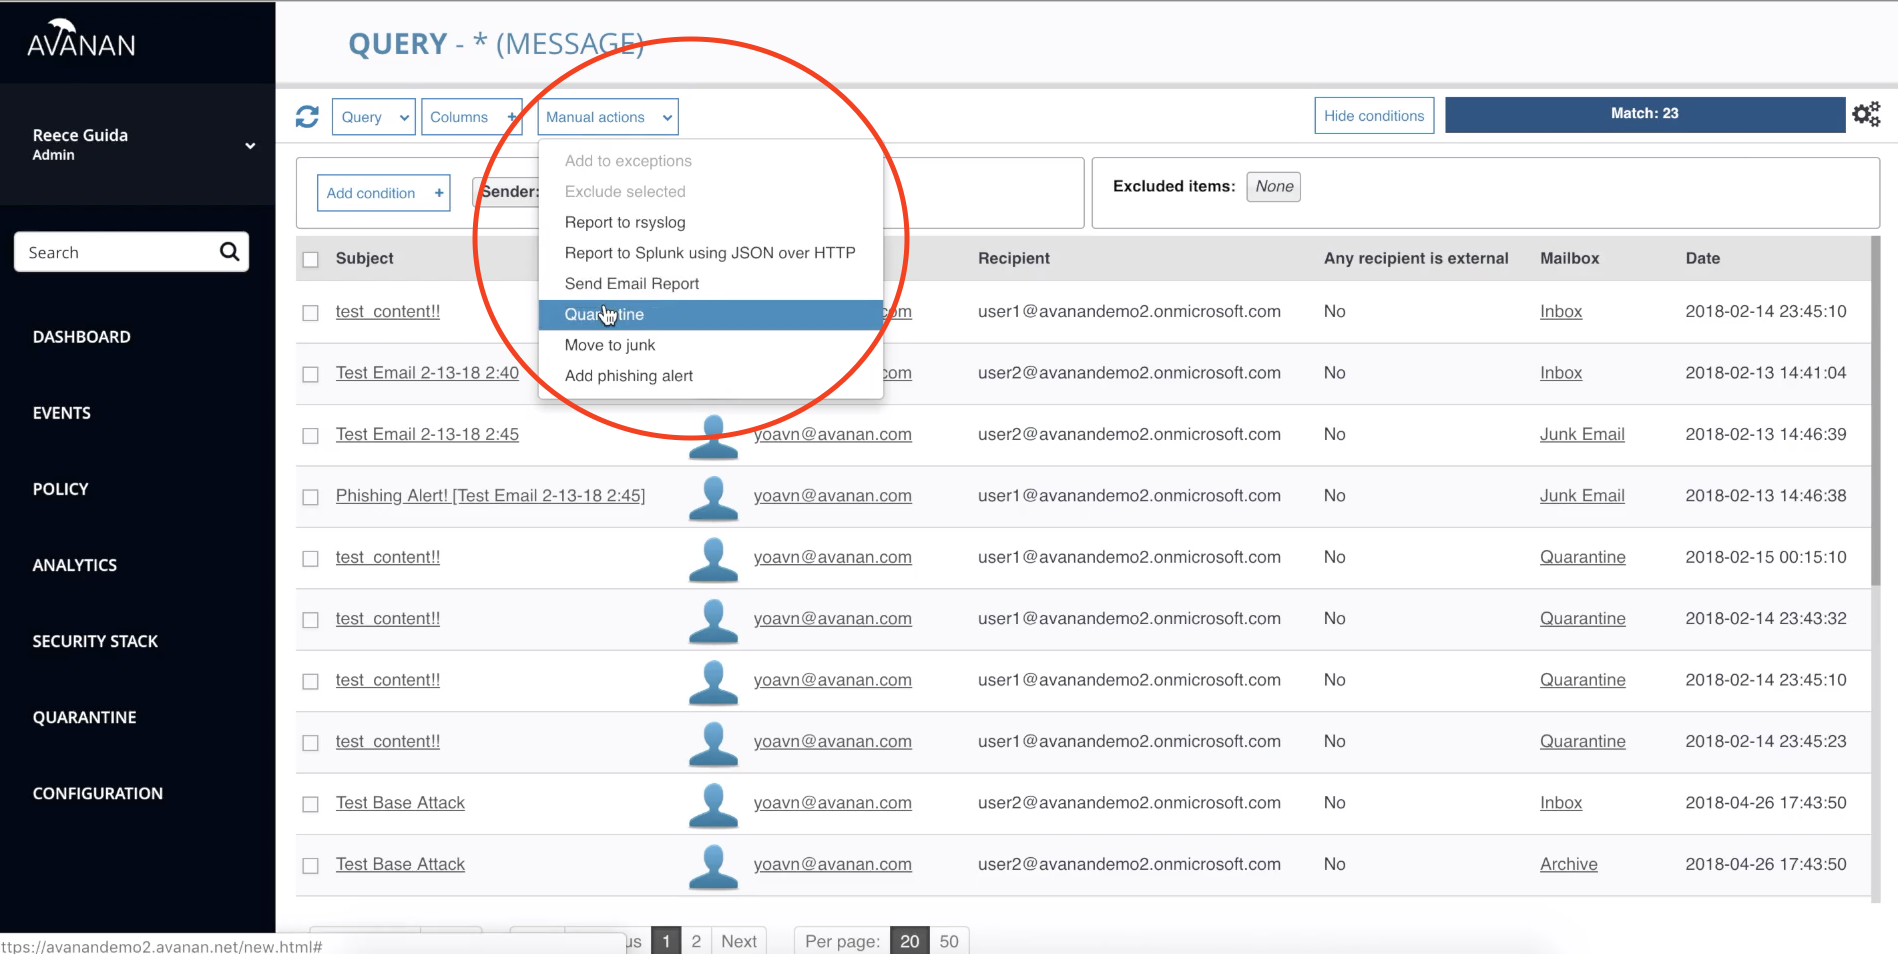 quarantine emails in Office 365 from a compromised account